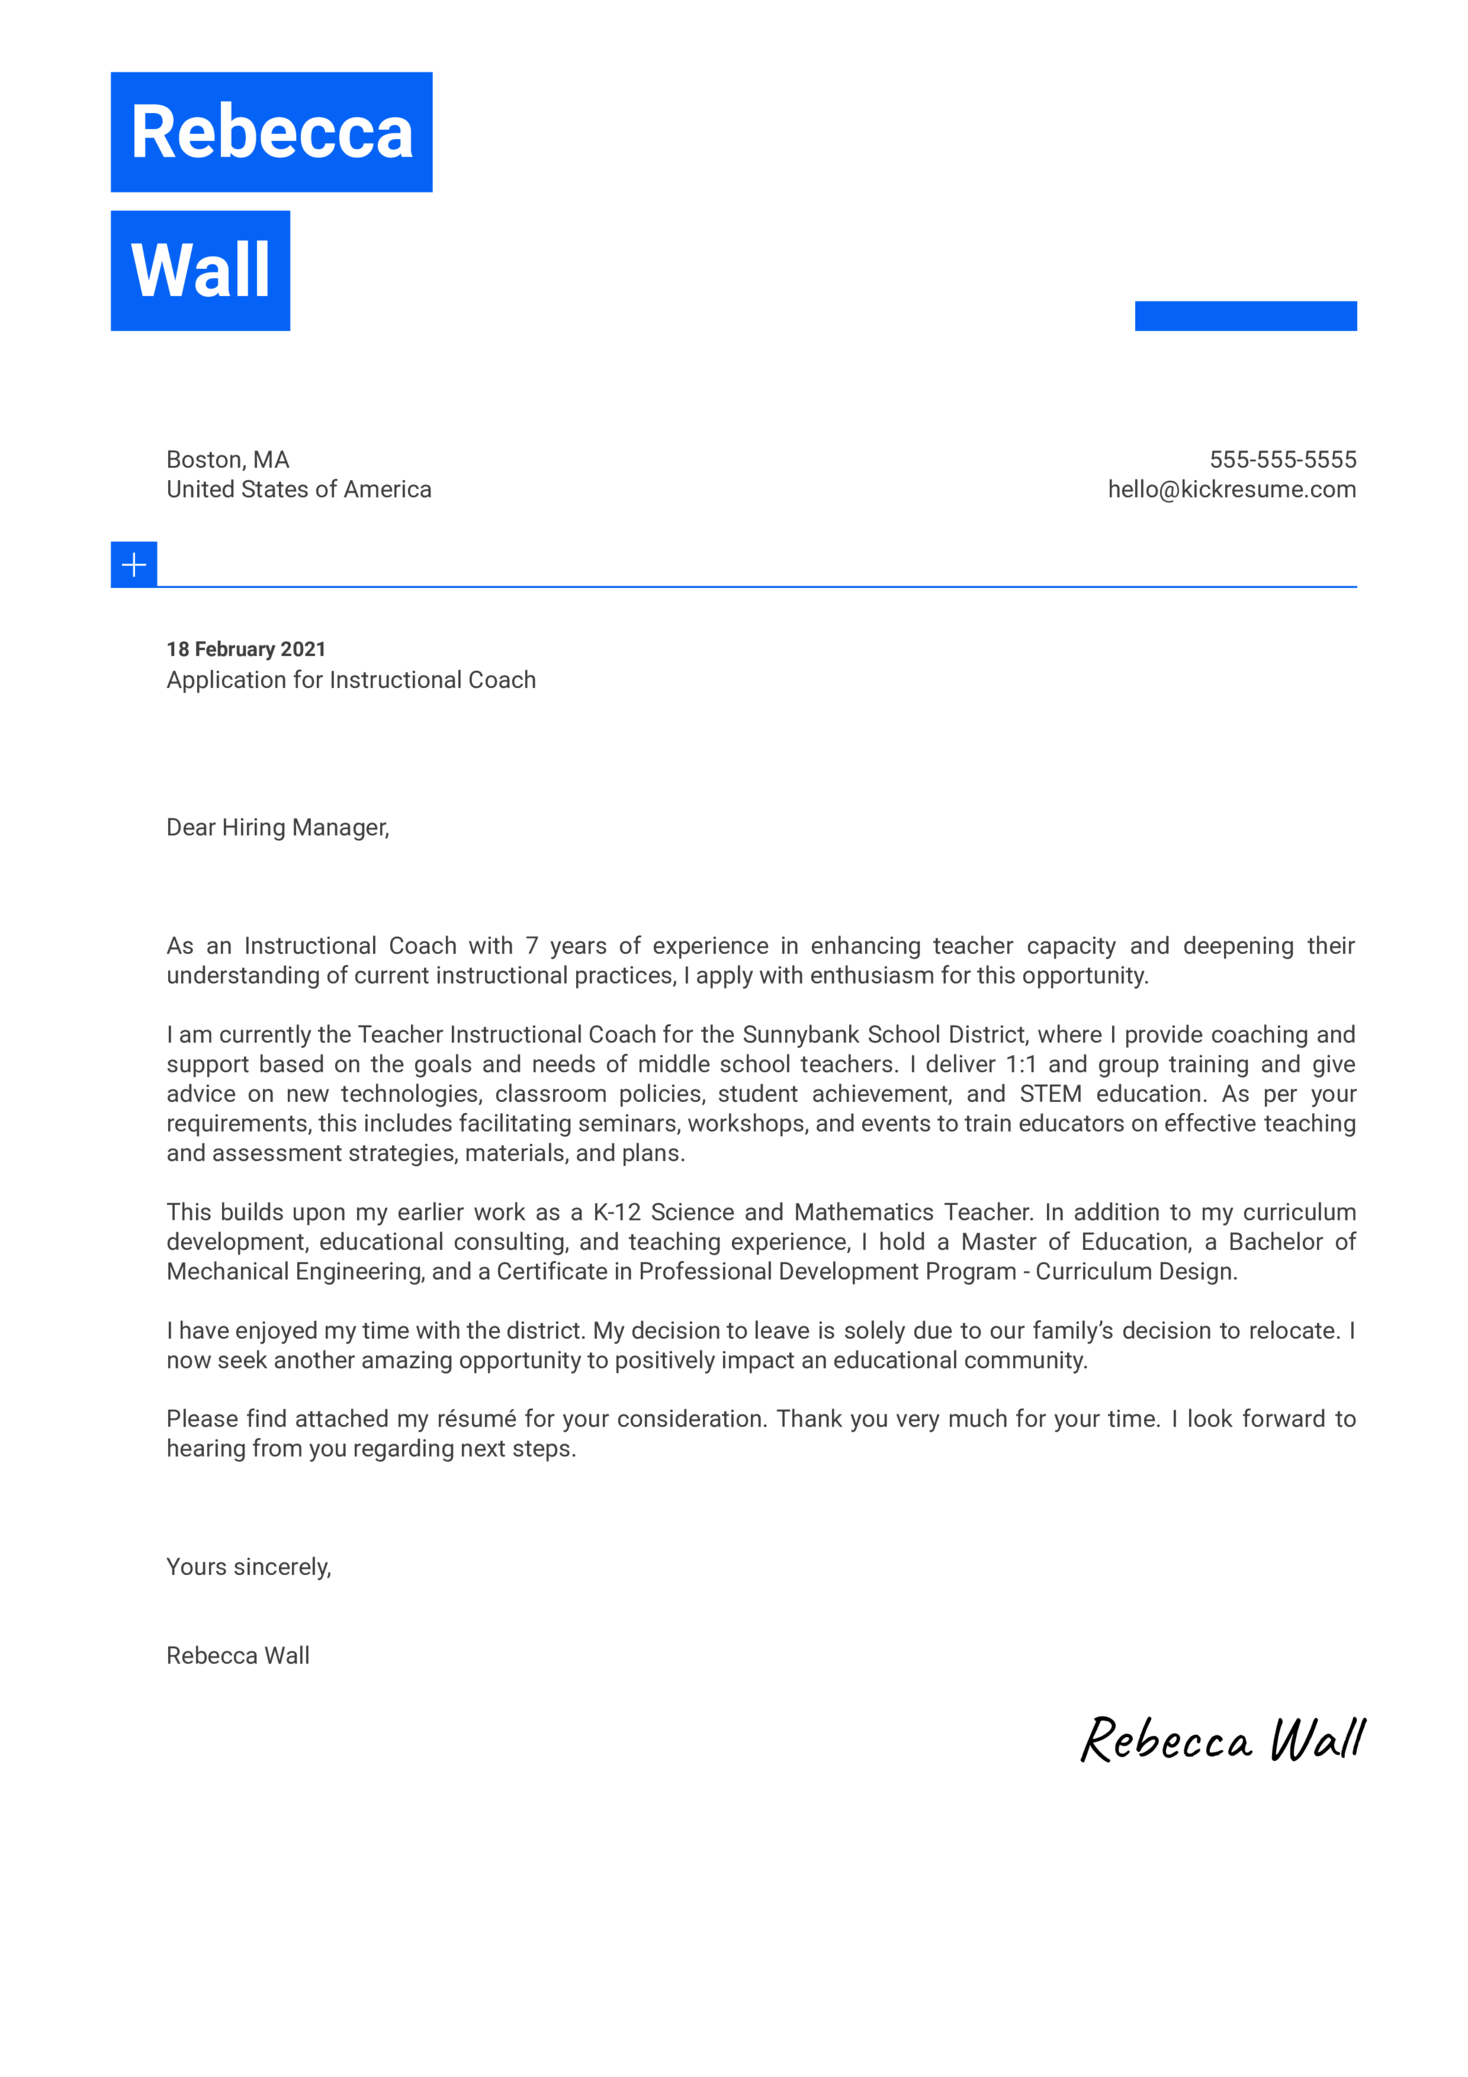 Instructional Coach Cover Letter Sample